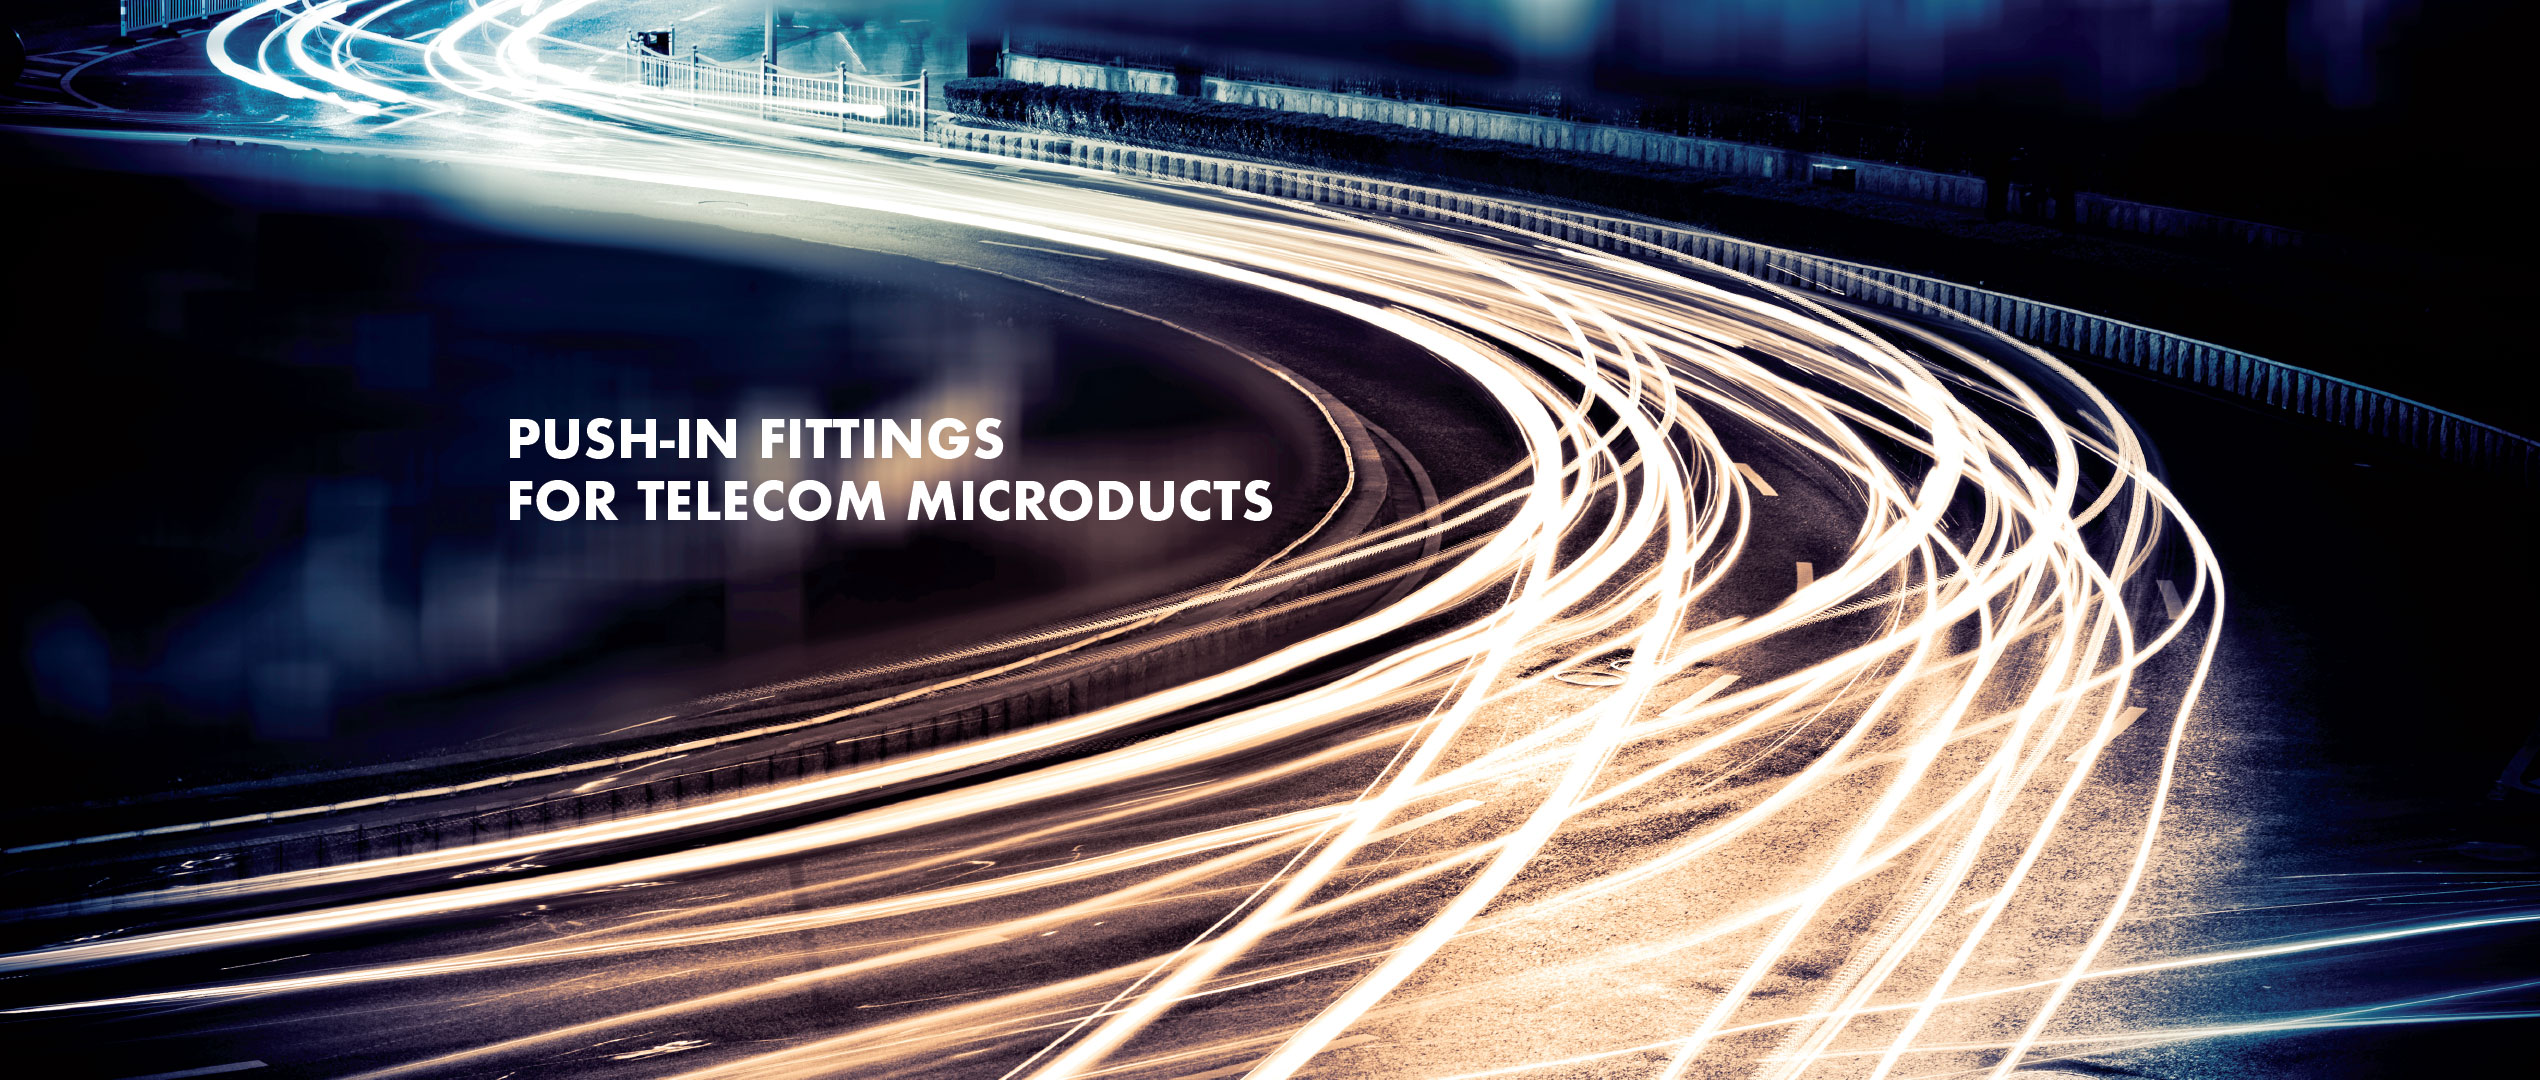 Net.fit Push-in fittings for telecom microducts